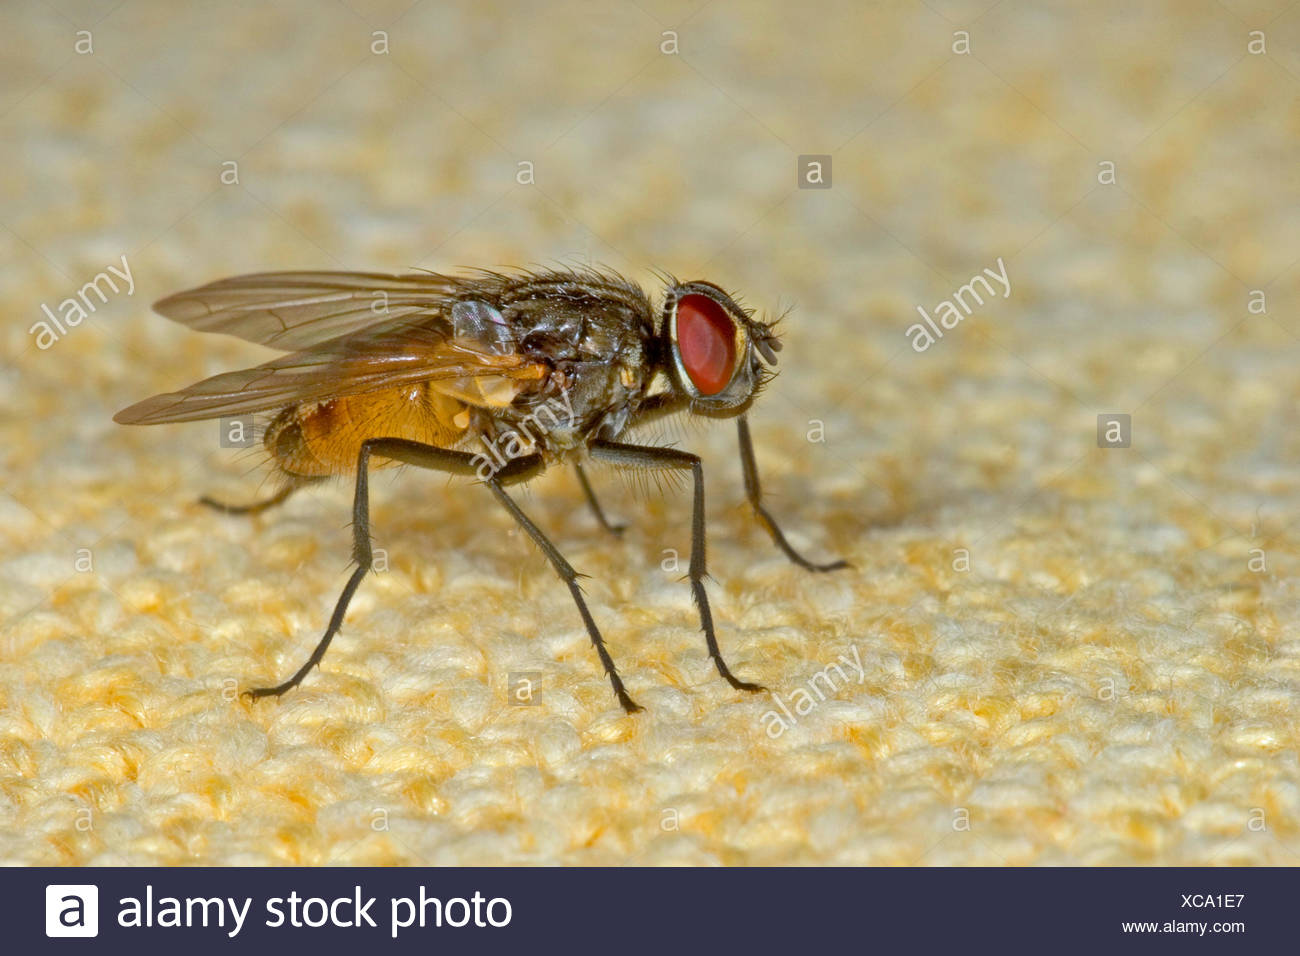 House fly (Musca domestica), on a tablecloth, Germany - Stock Image